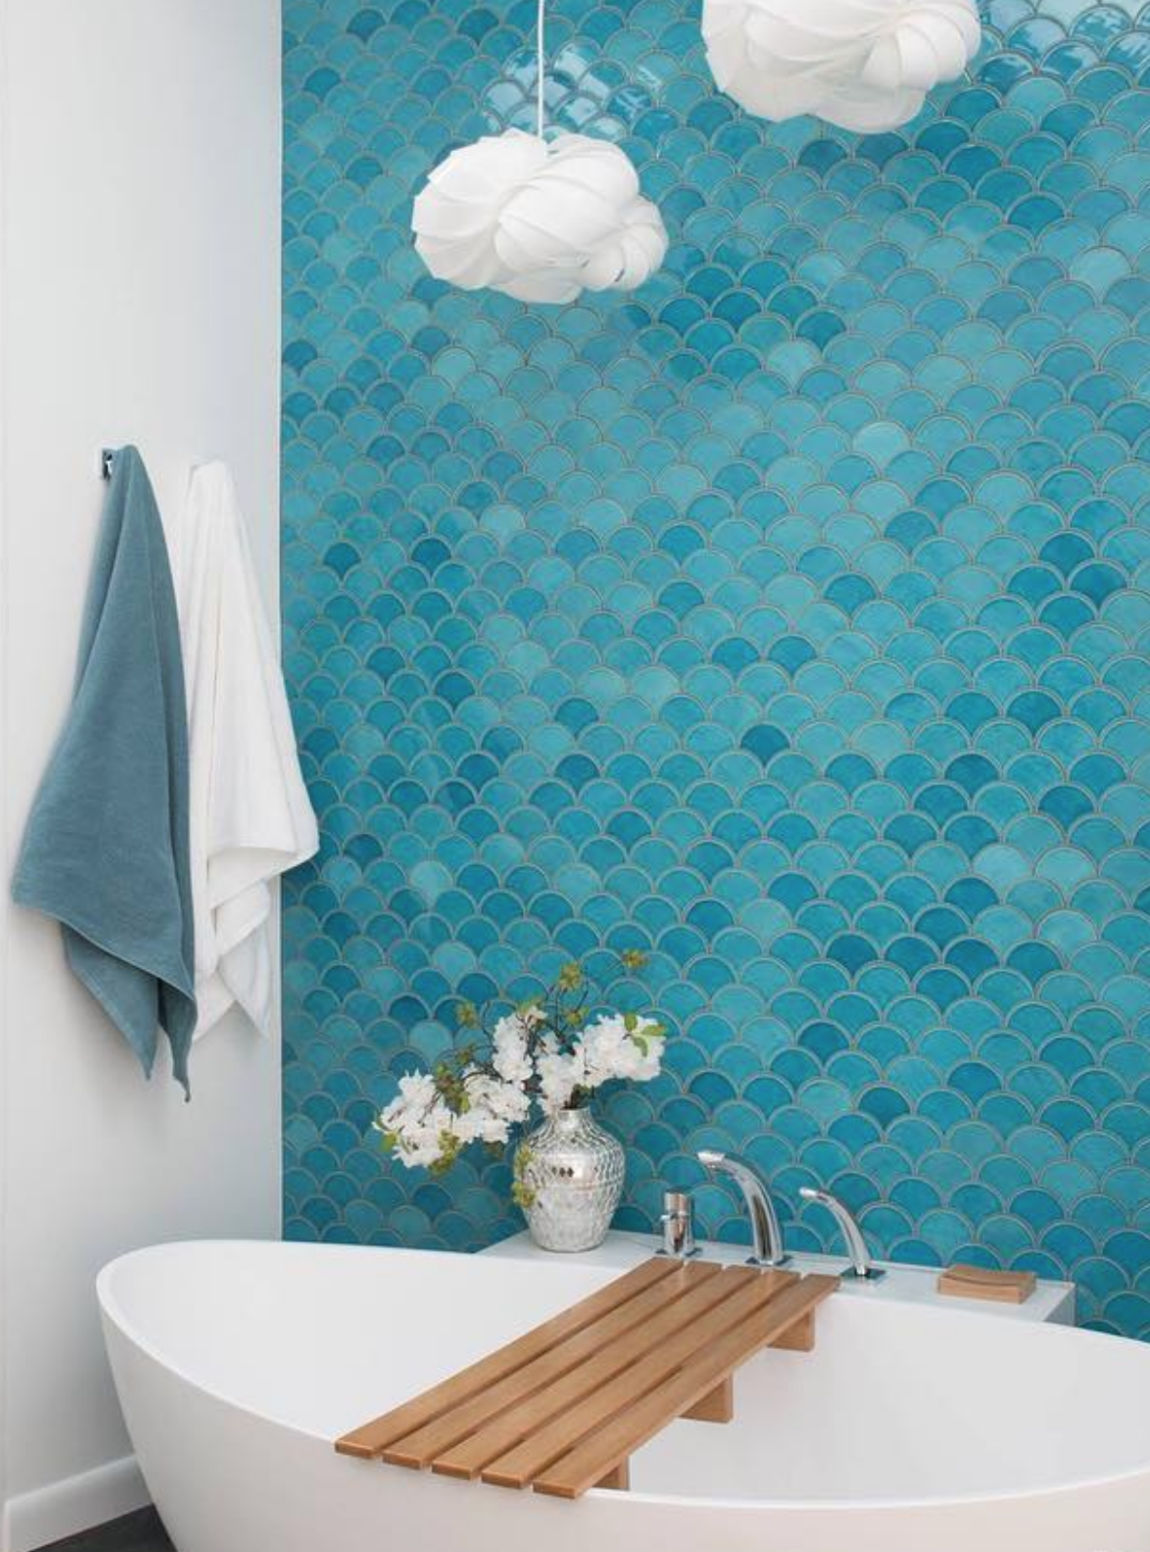 How to Style Bathroom Tile | Tile installation, Color accents and ...